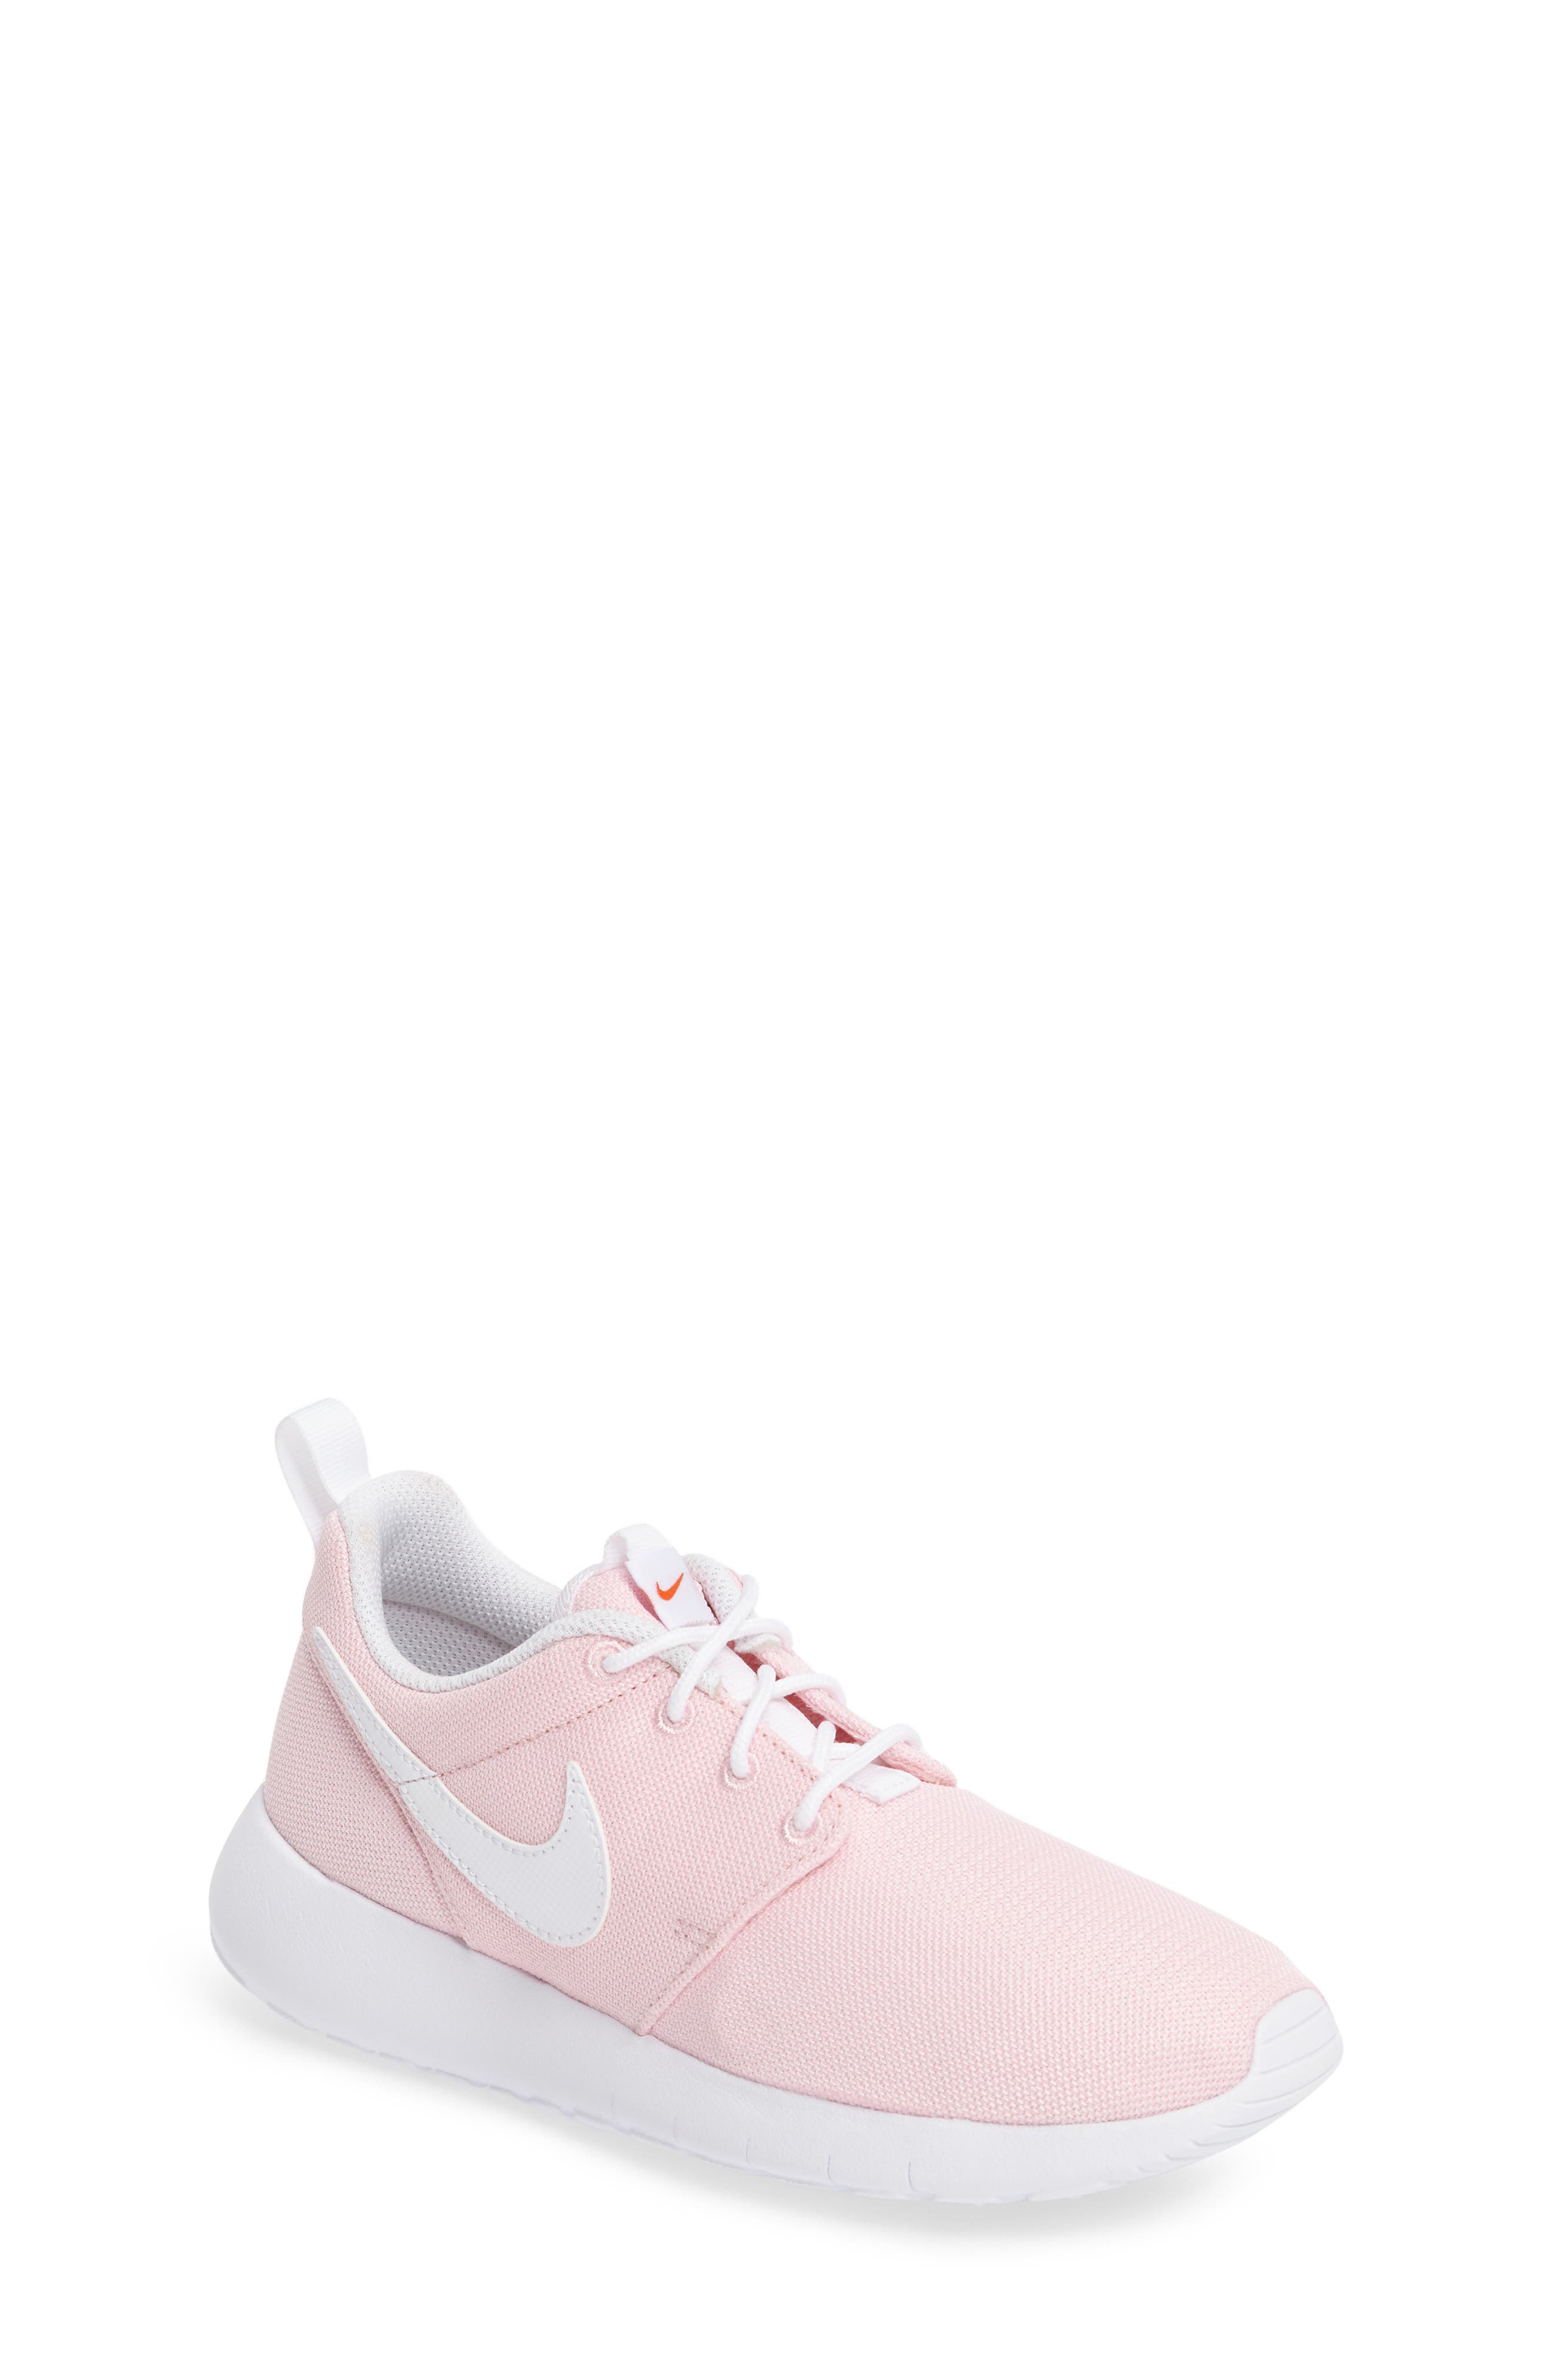 Main Image - Nike 'Roshe Run' Athletic Shoe (Little Kid & Big Kid)